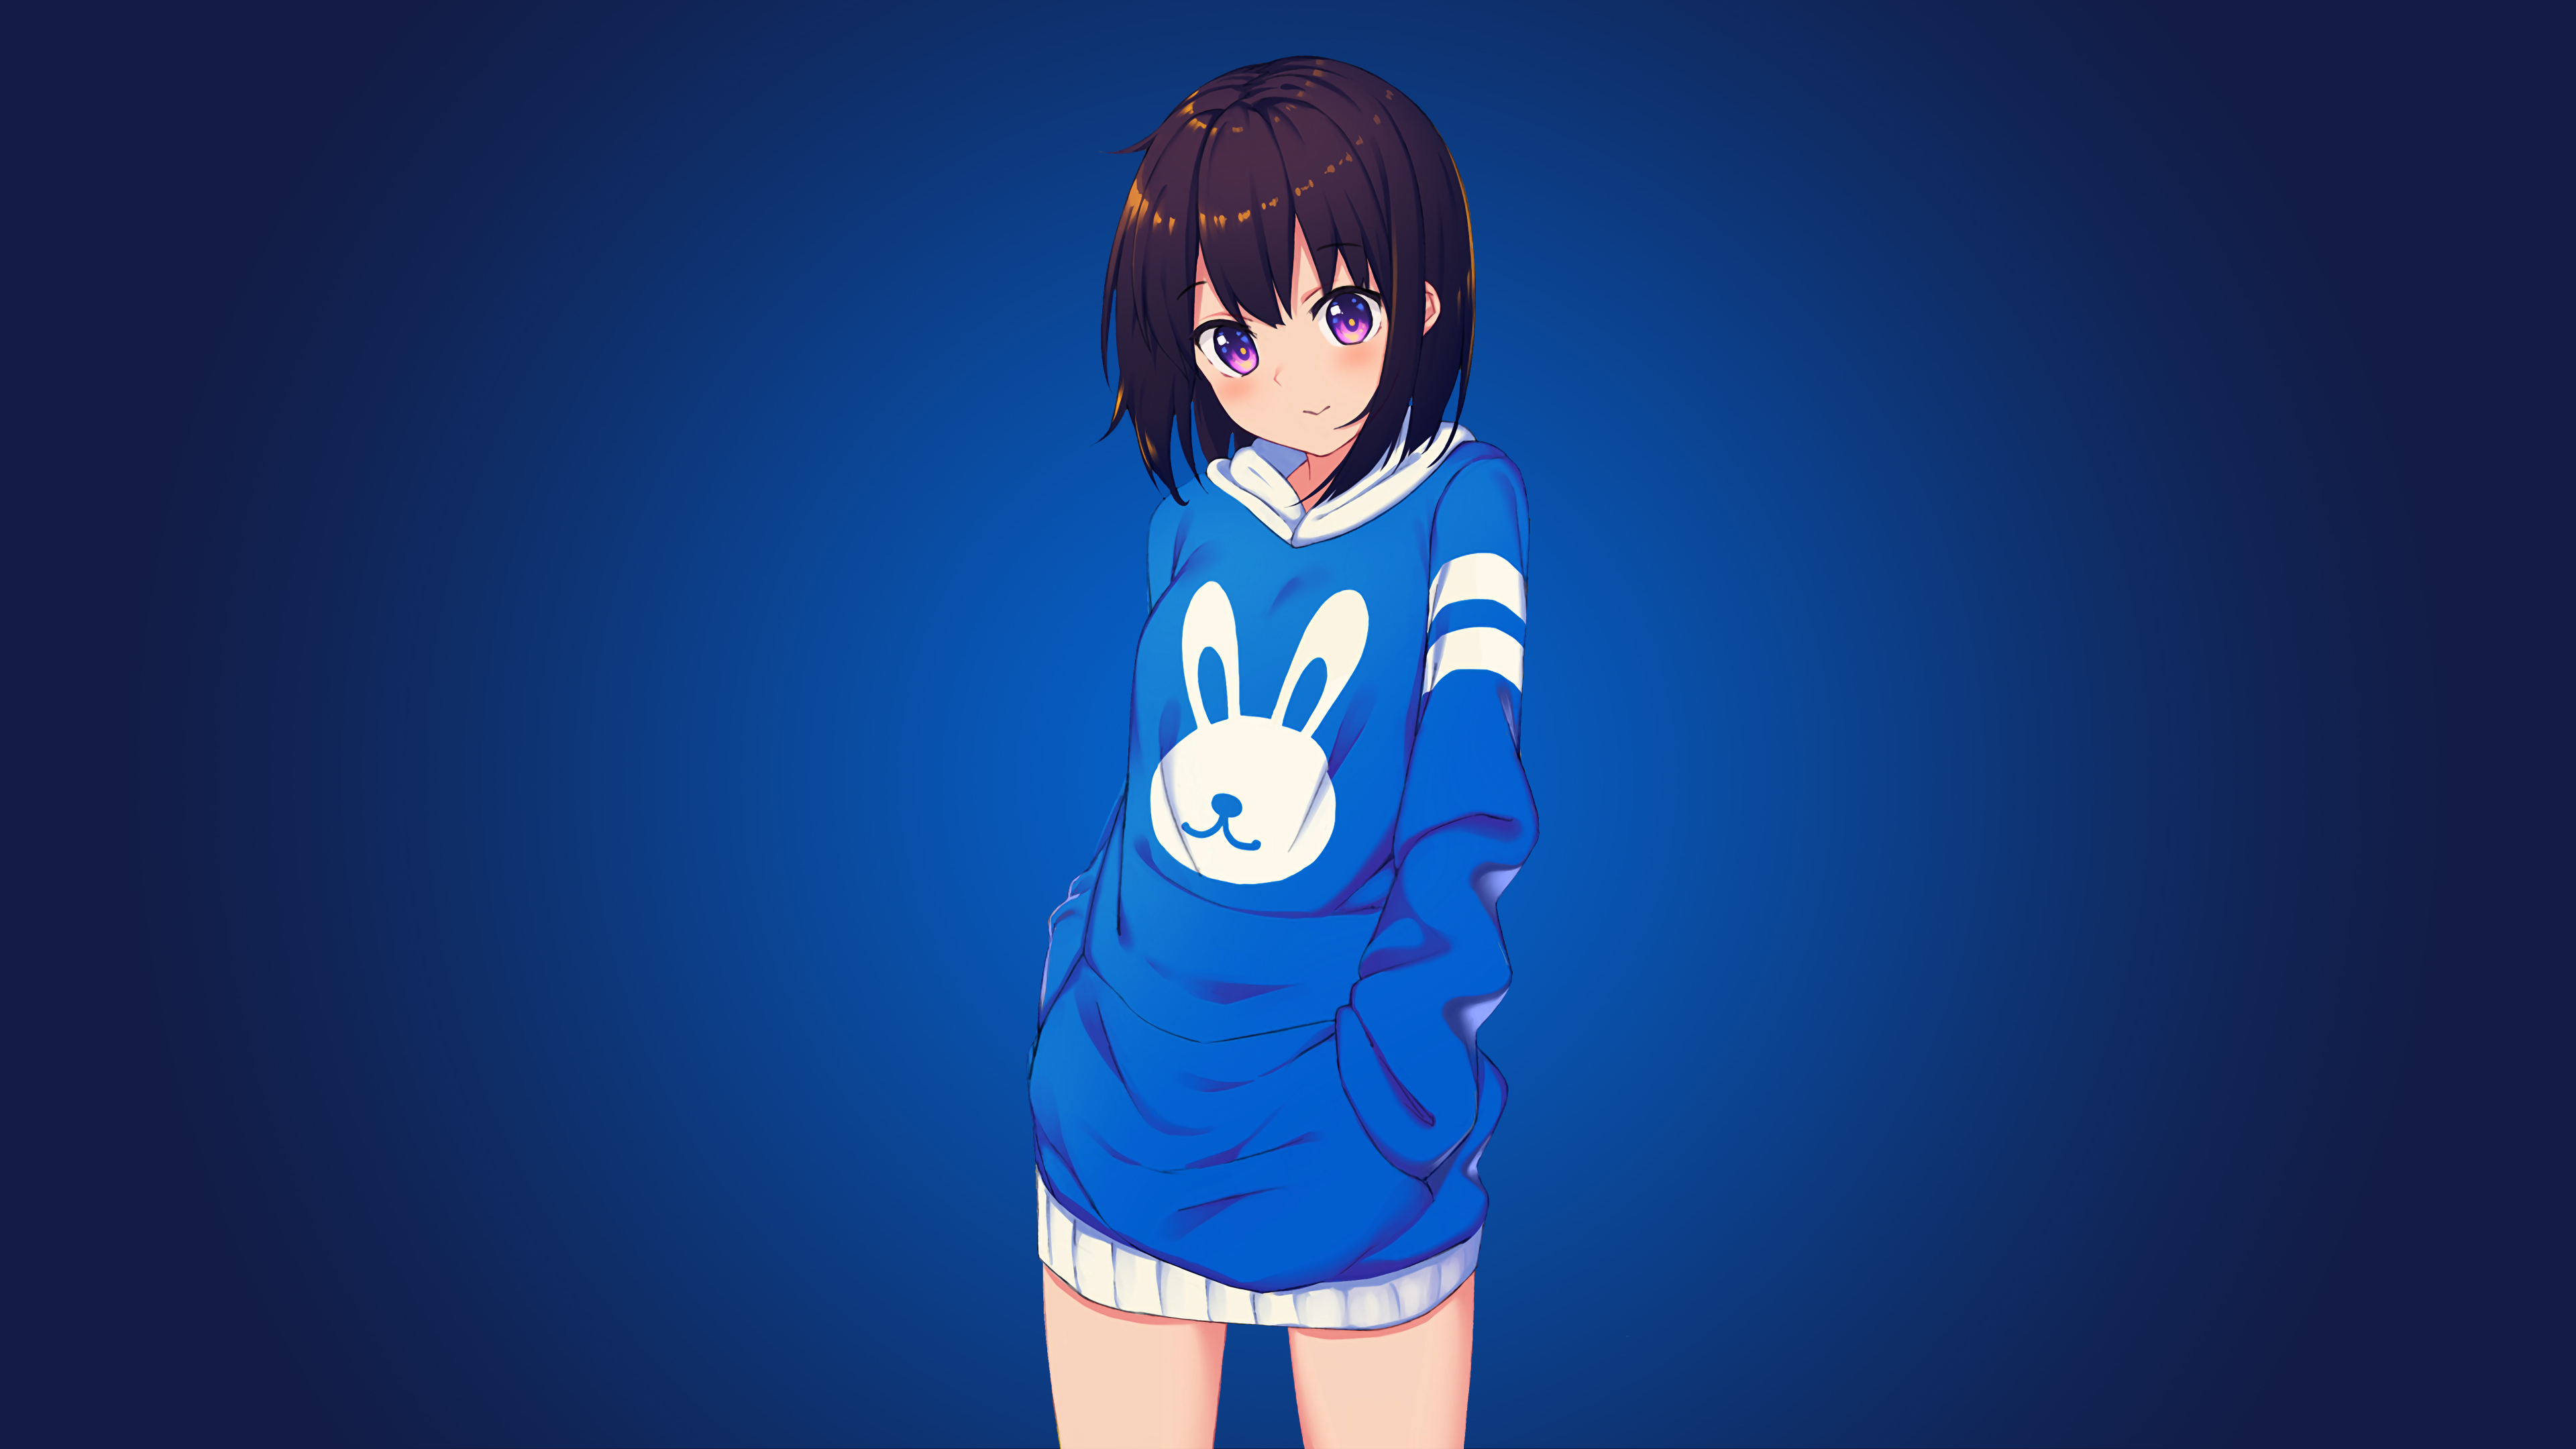 Blue Bunny Girl Anime 4k Hd Anime 4k Wallpapers Images Backgrounds Photos And Pictures